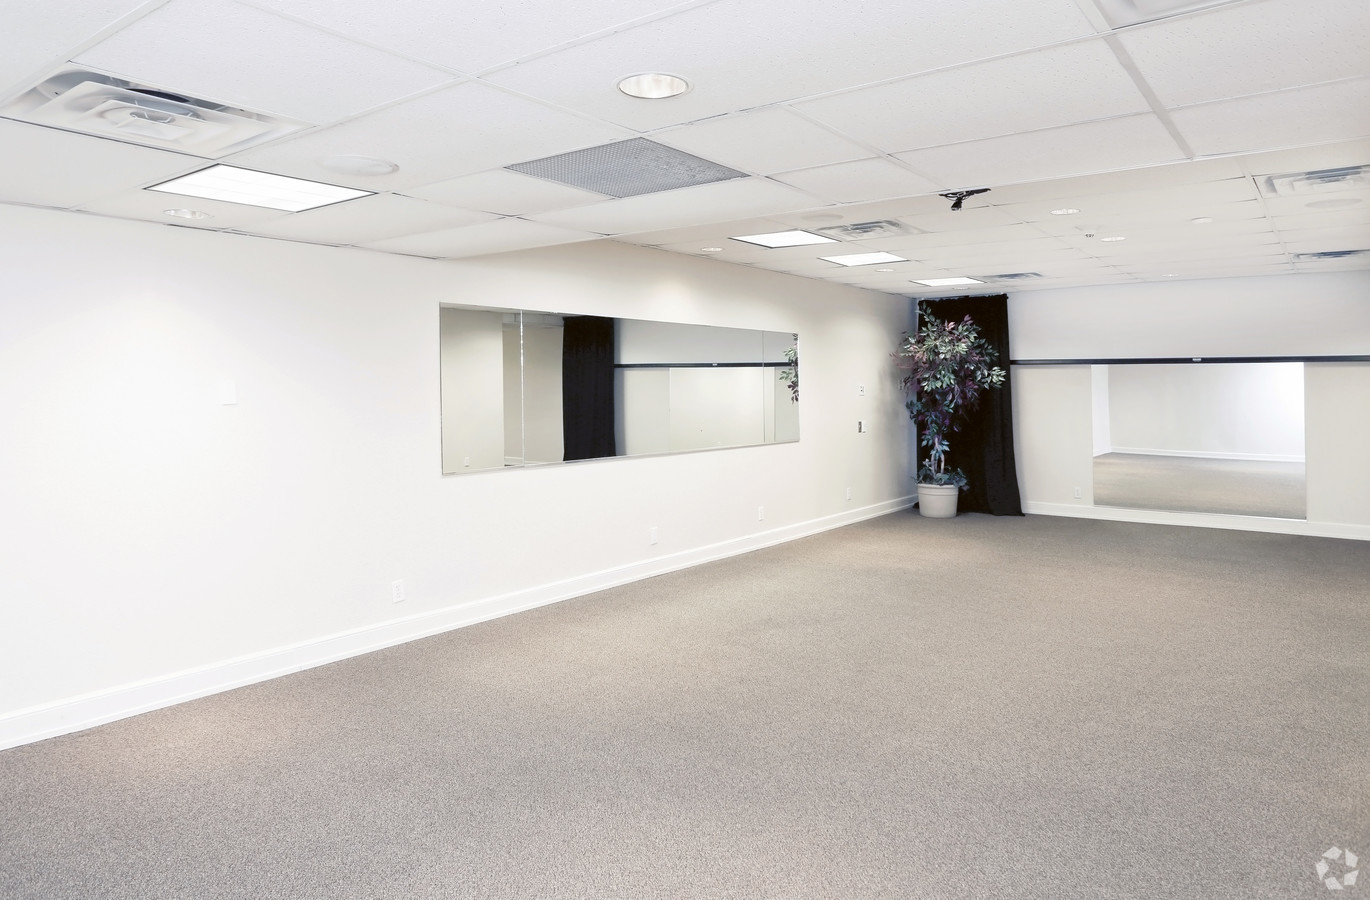 Medical Office Suite in Dallas - Suite 225A - Image 2 of 22